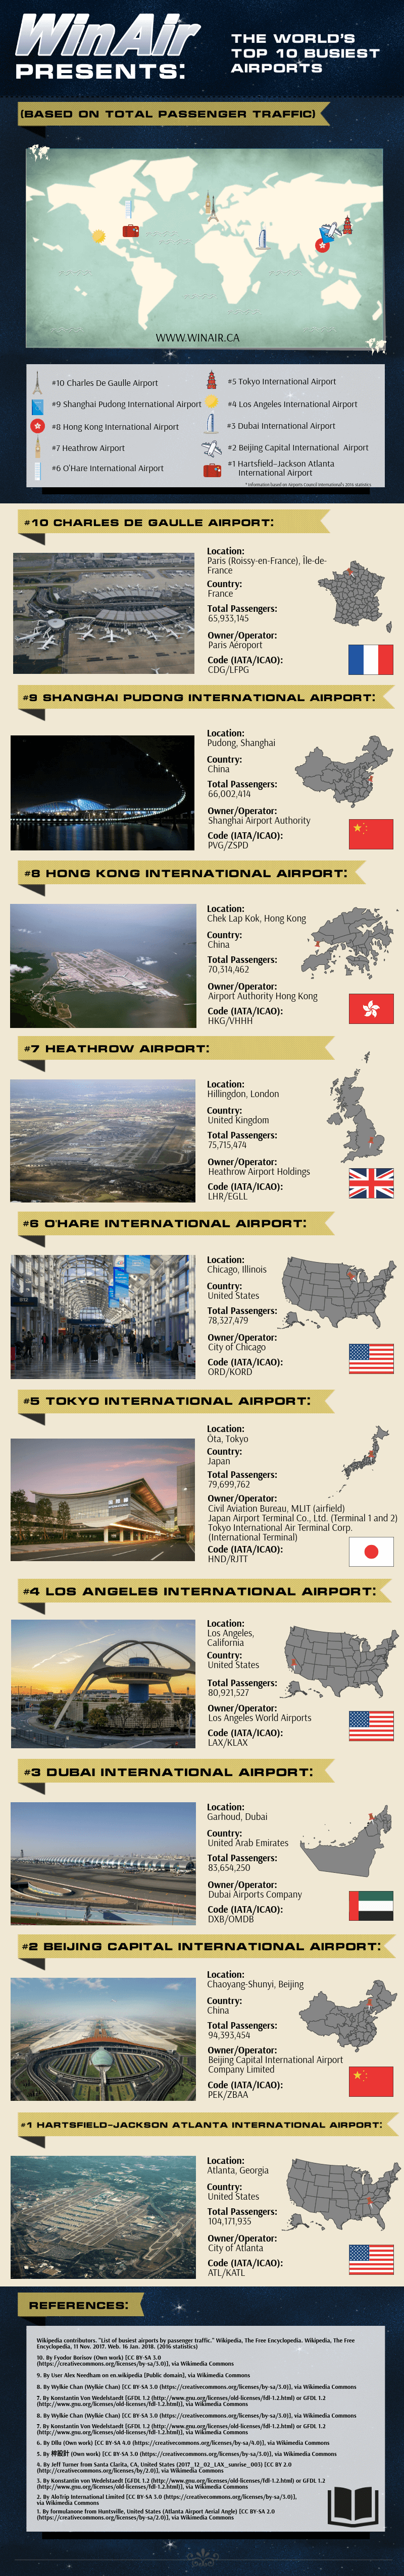 The World's Top 10 Busiest Airports - based on total passenger traffic - infographic image